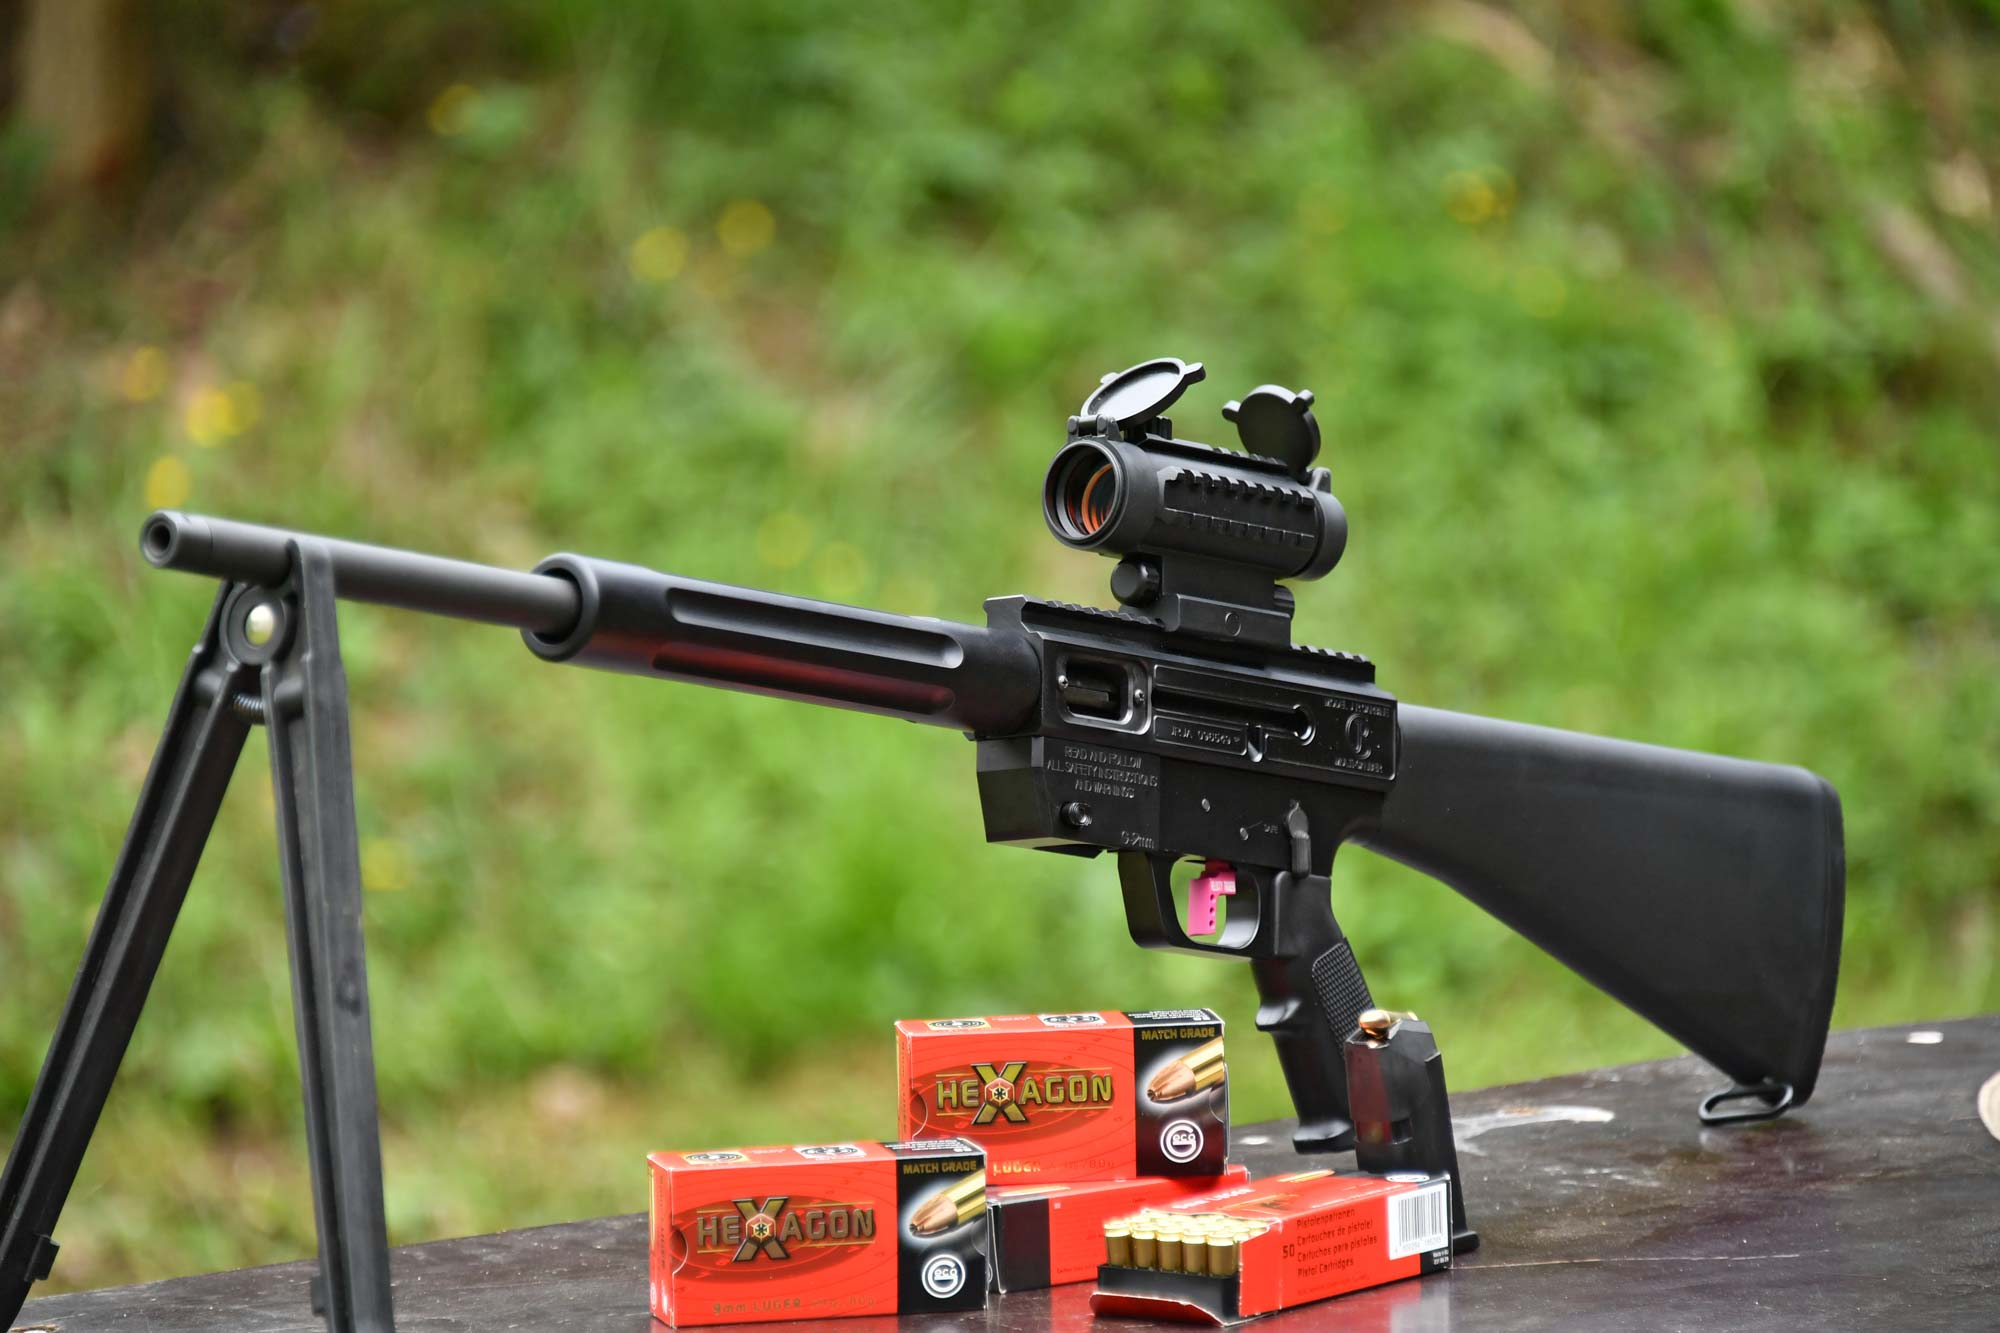 Just Right Carbine,: Shooting test: Gen3 Sporter Pistol-caliber carbine by Just Right Carbines